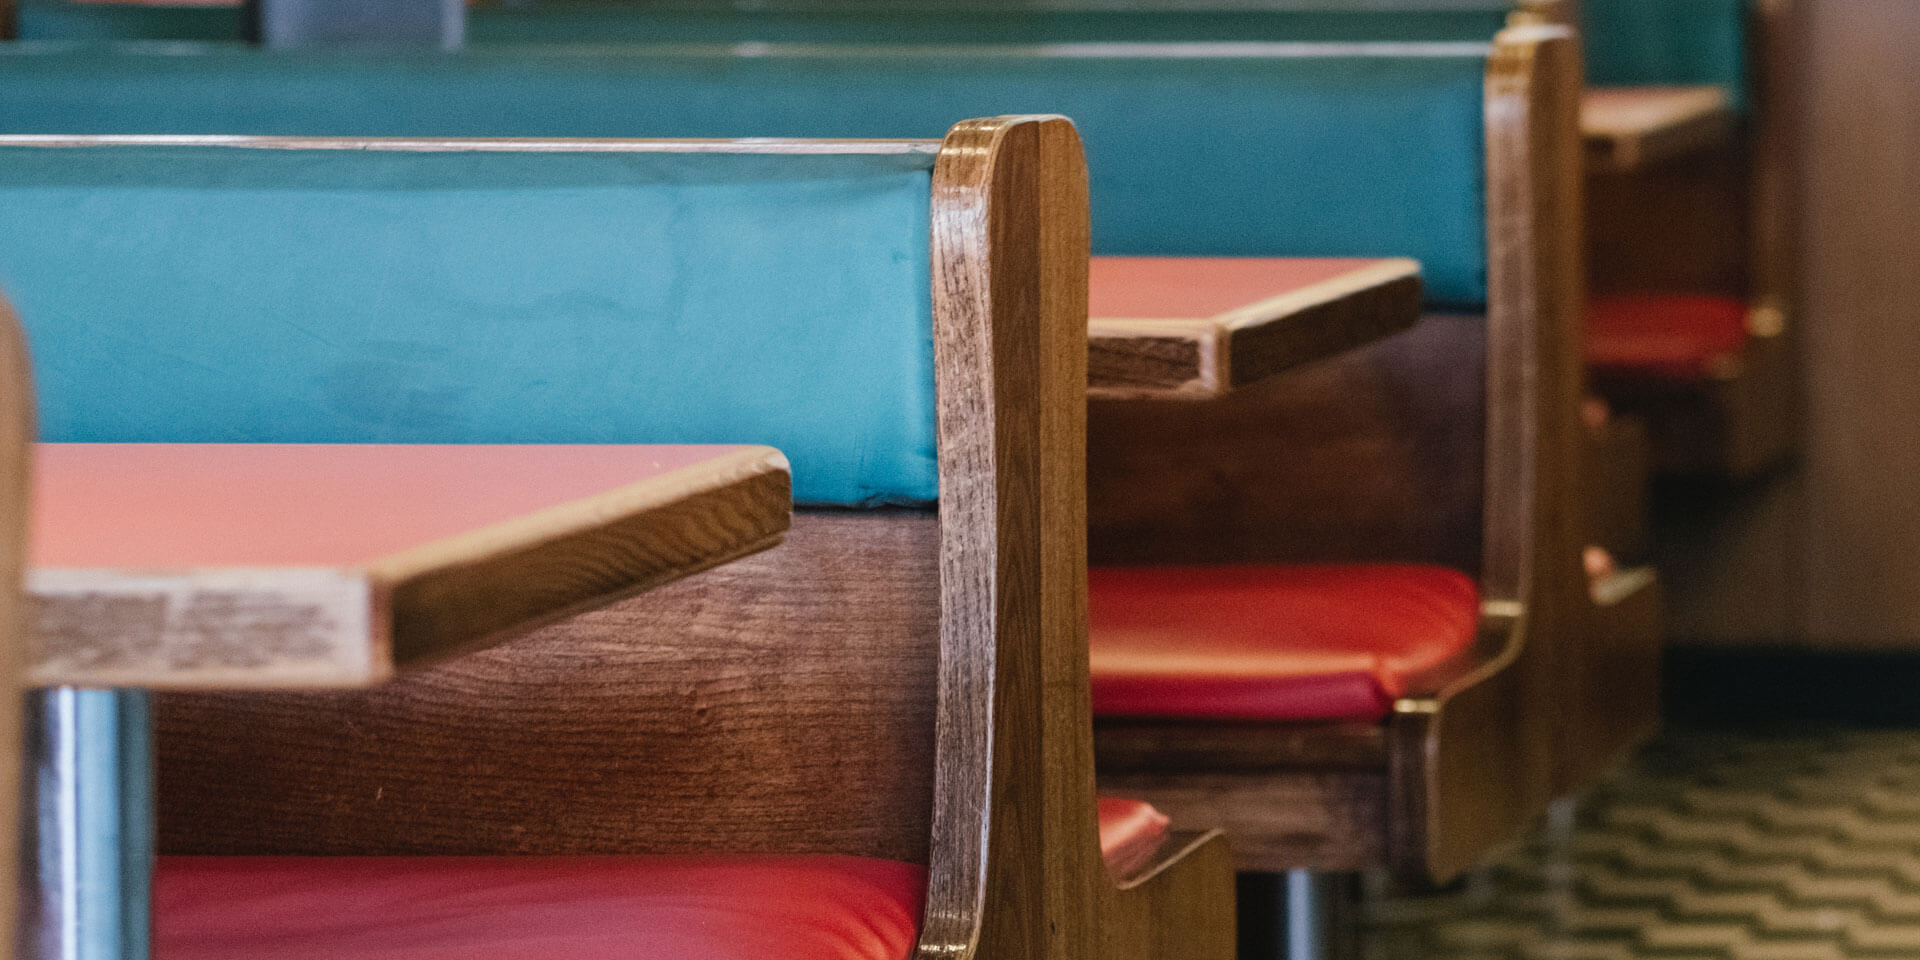 5 mistakes that drive diners away, and how you can fix them